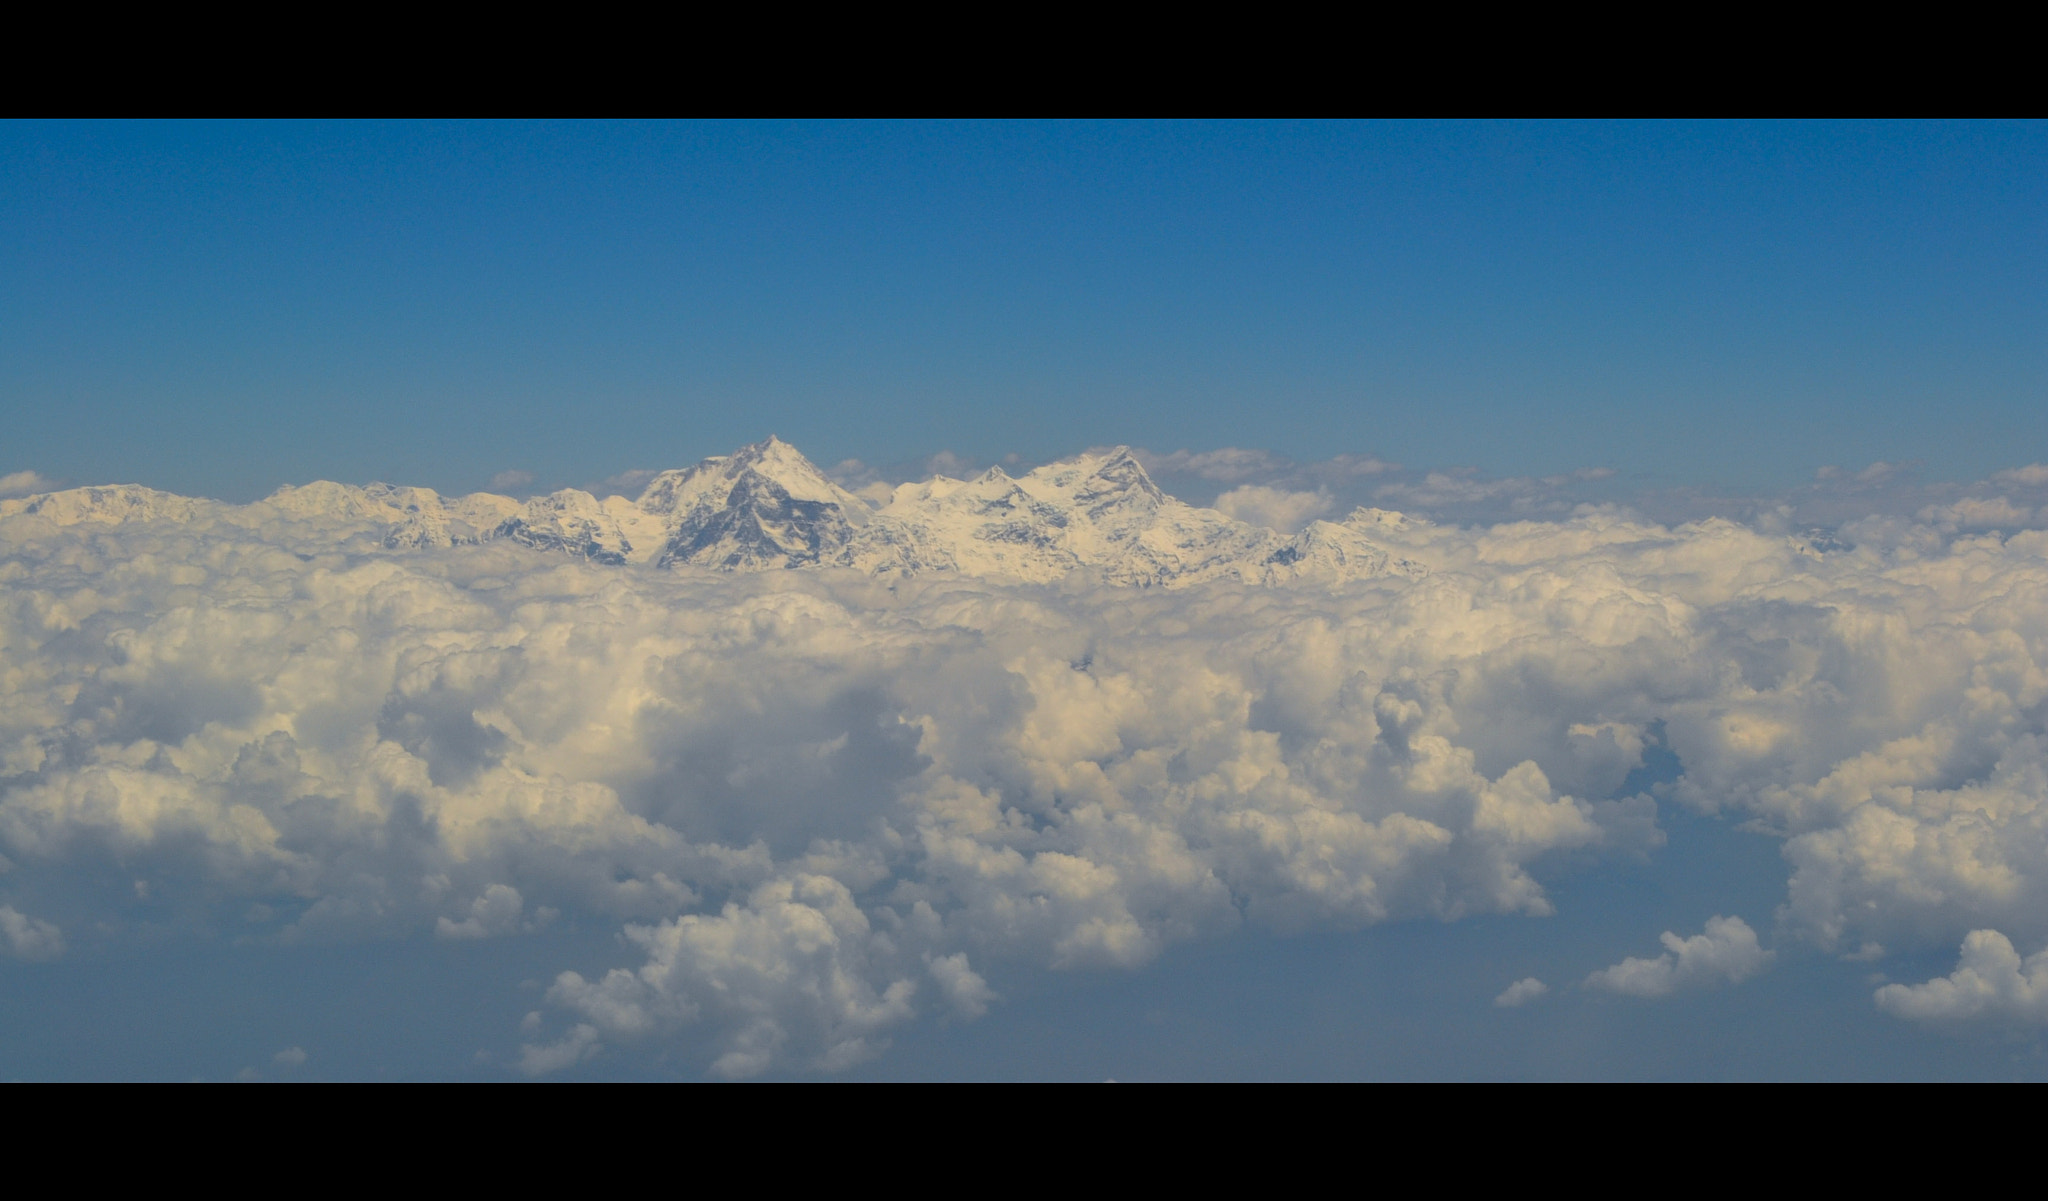 Photograph among the clouds by kumar varun on 500px